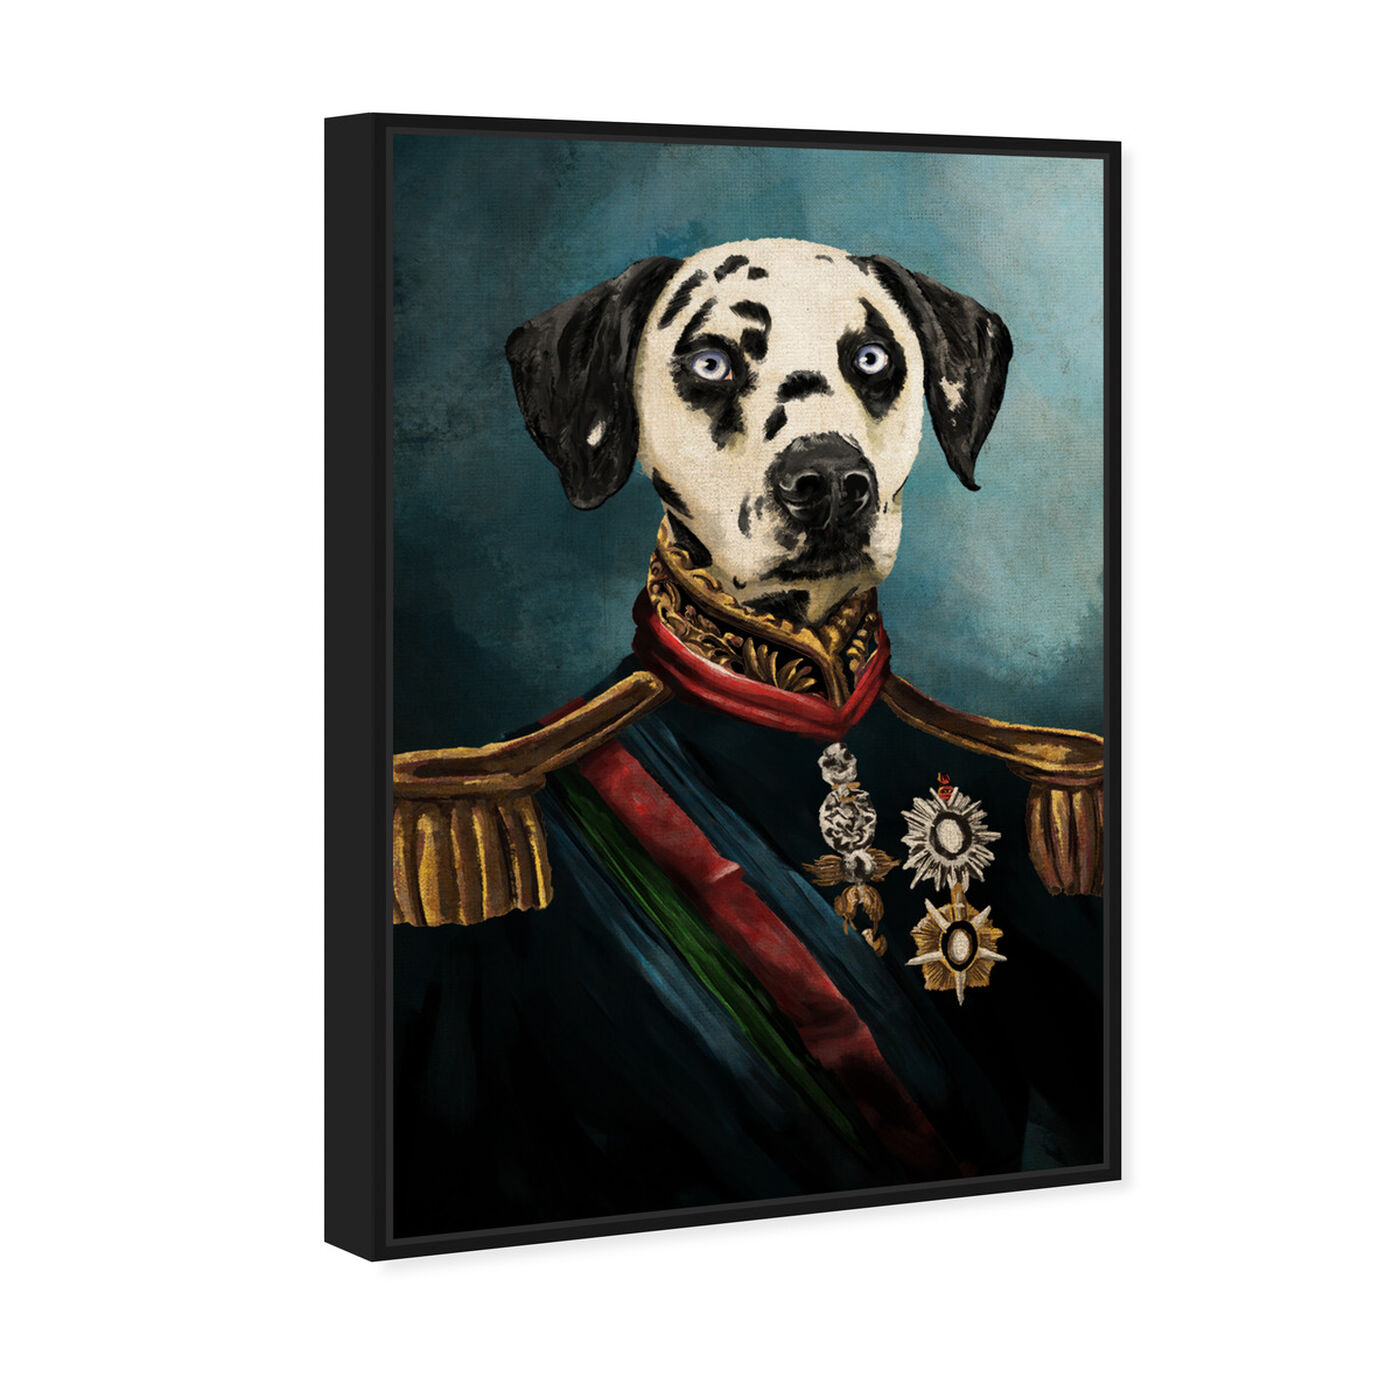 Angled view of Dalmation Duke featuring animals and dogs and puppies art.